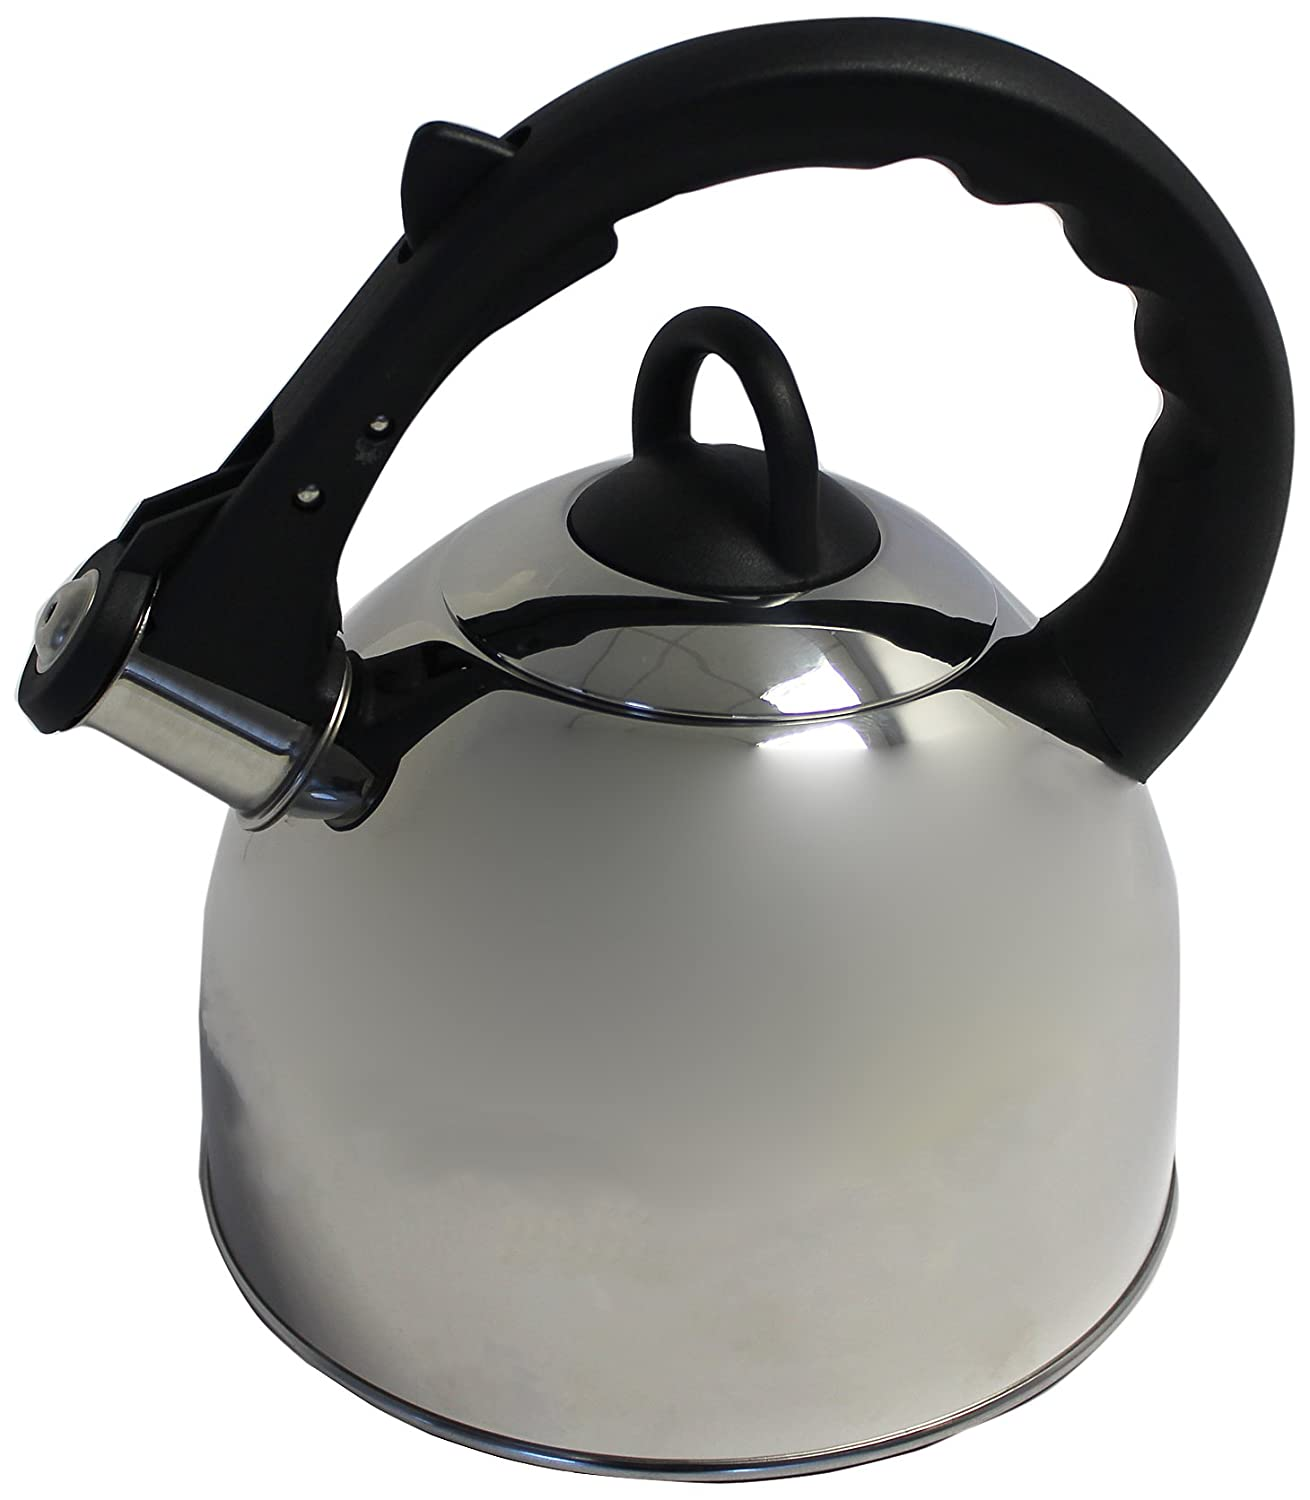 imperial easycook  litre stainless steel whistling kettle with  - imperial easycook  litre stainless steel whistling kettle with bakelitehandle silver and black amazoncouk kitchen  home